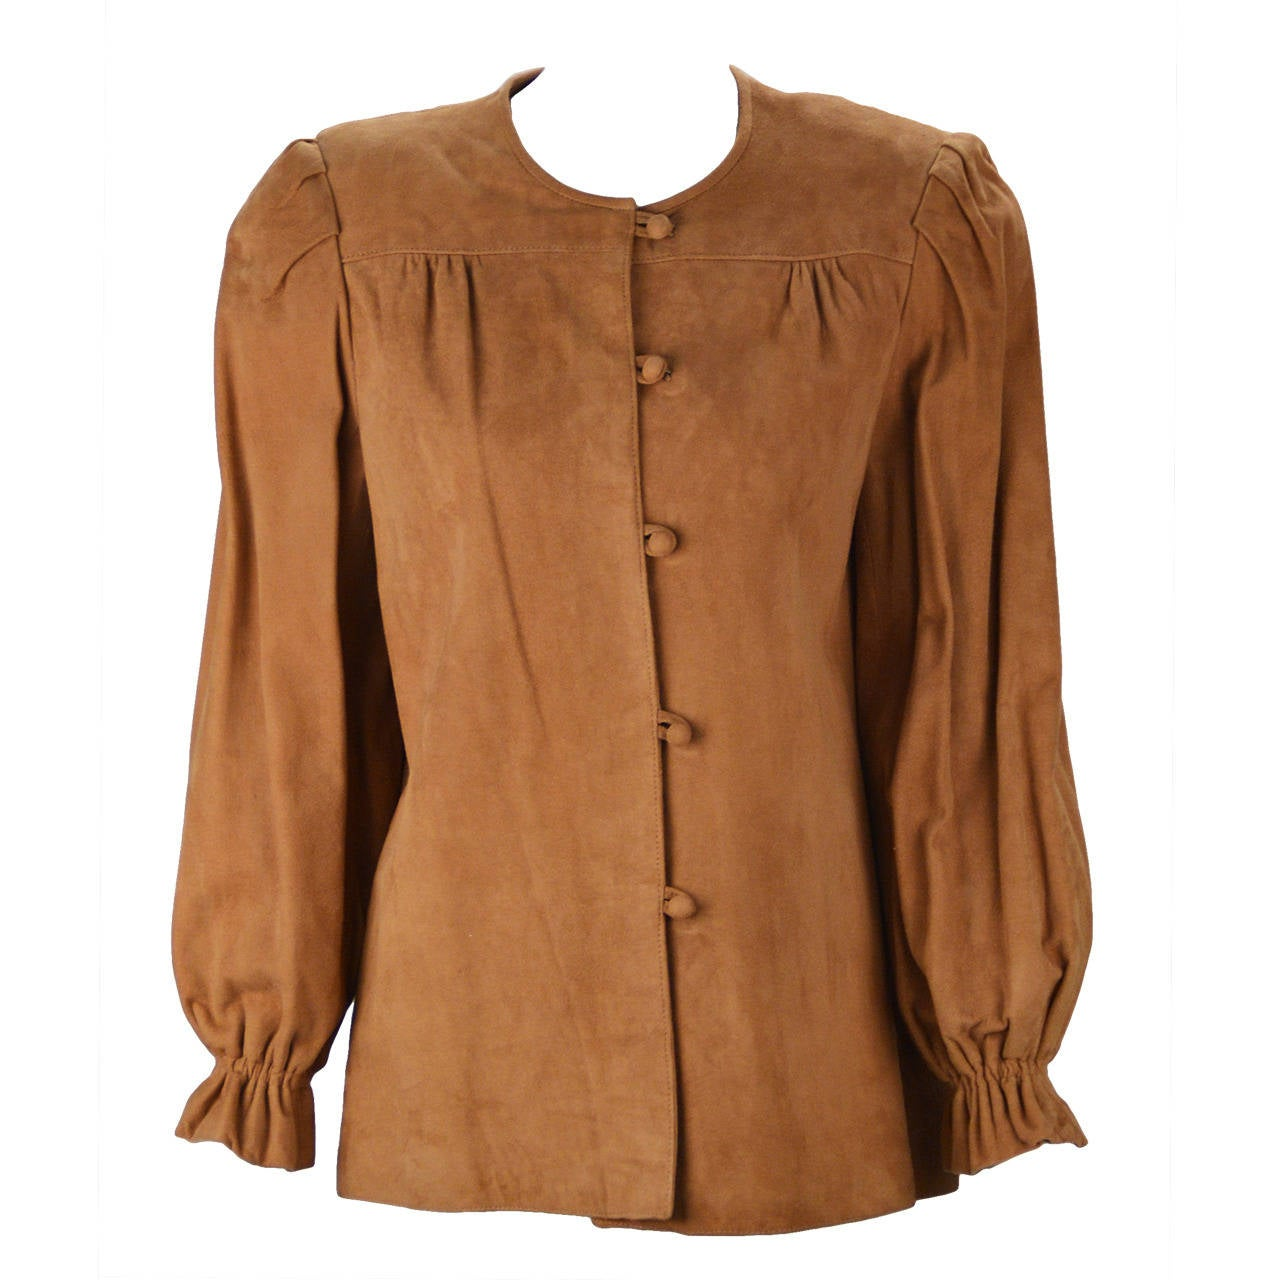 1980s Suede Fendi Shirt Jacket